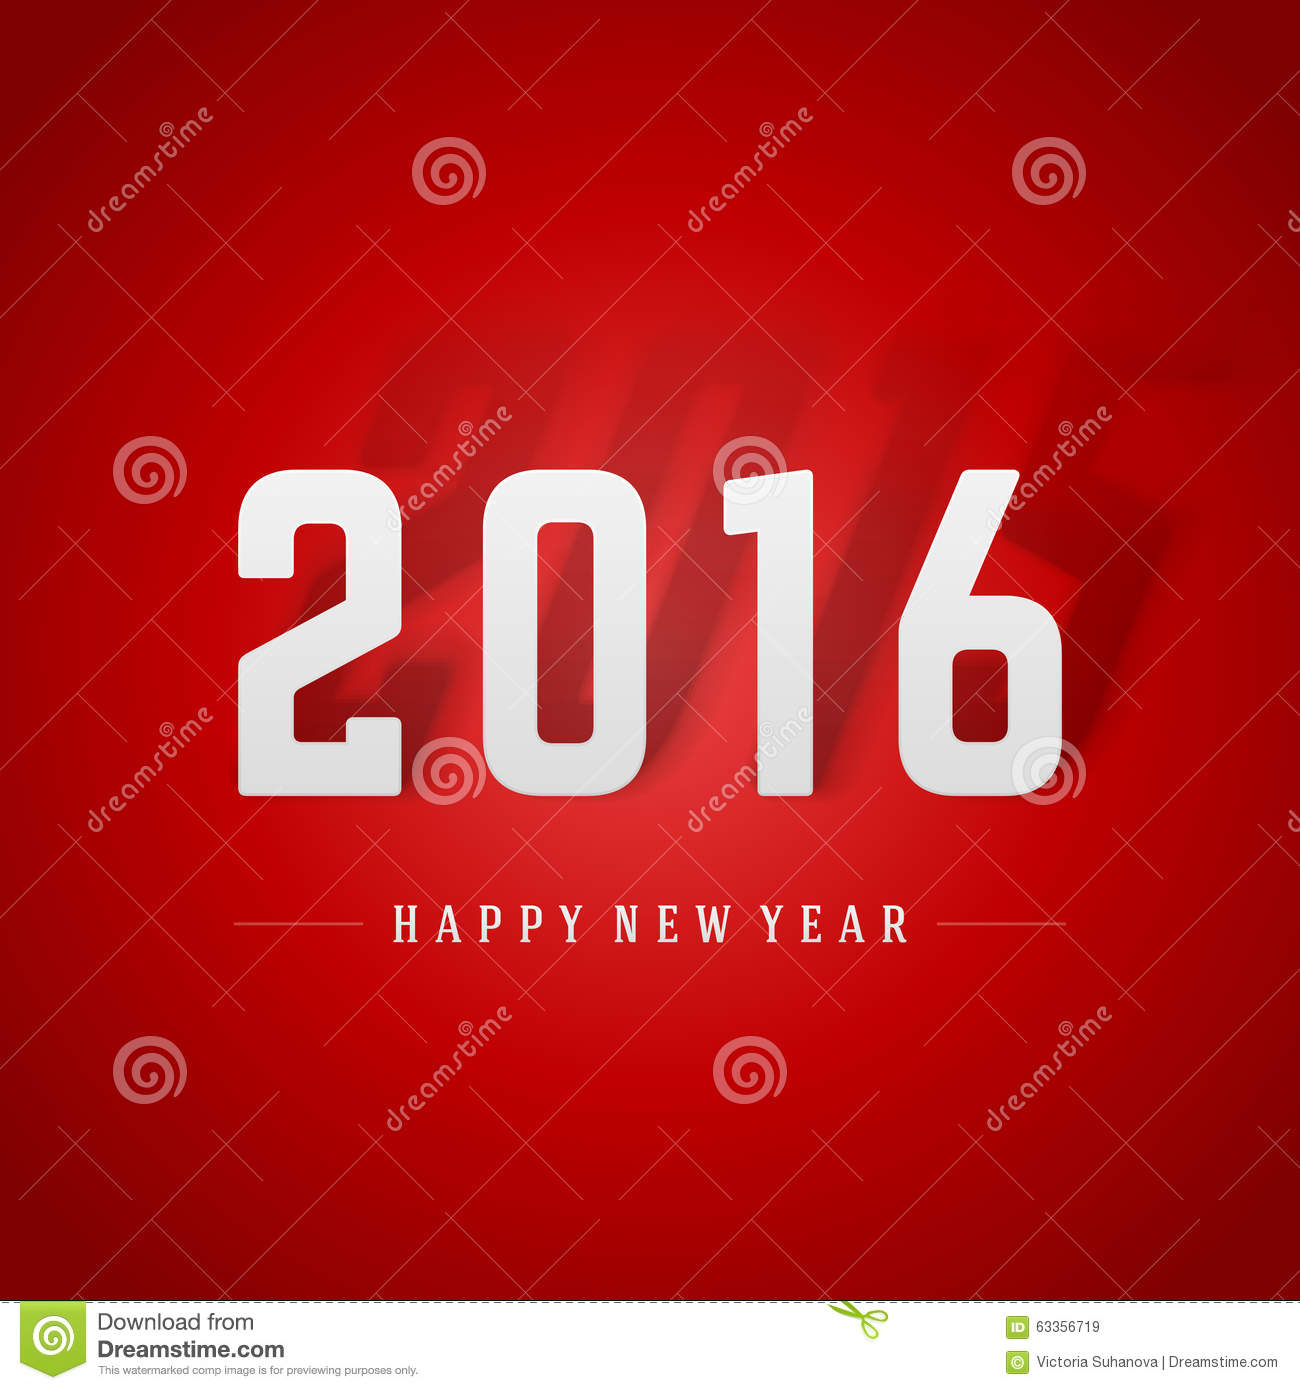 happy new year 2016 and 2015 shadow 3d message